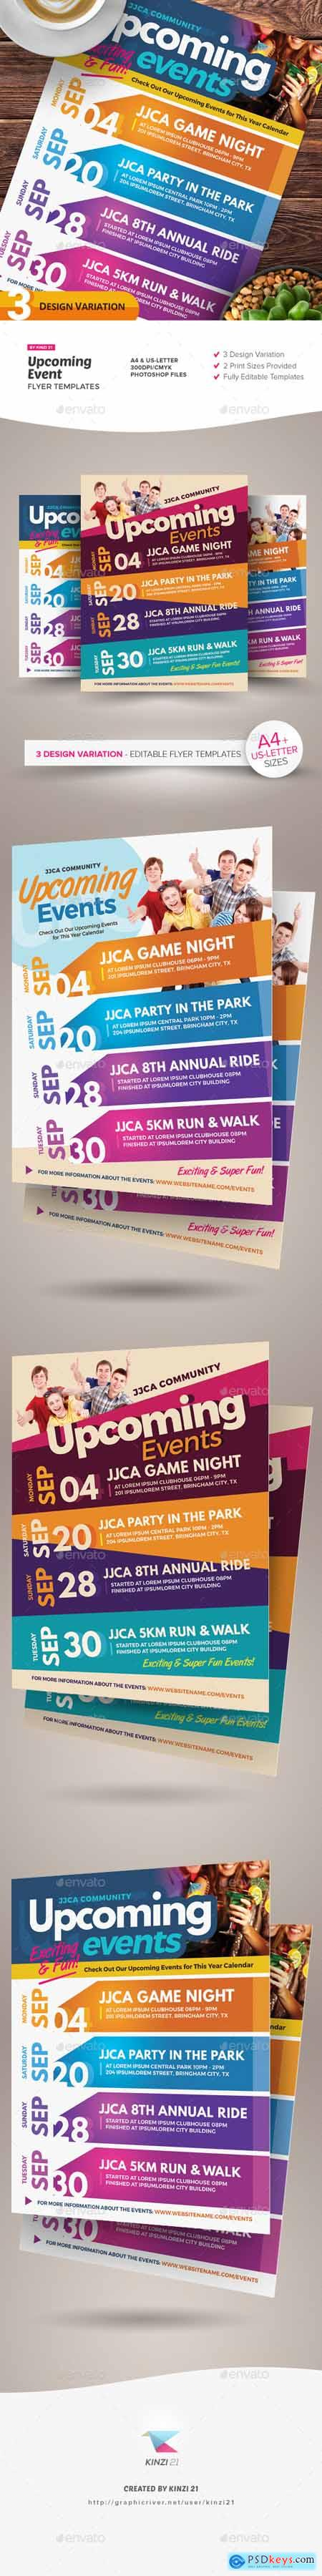 Upcoming Events Flyer Templates 25245277